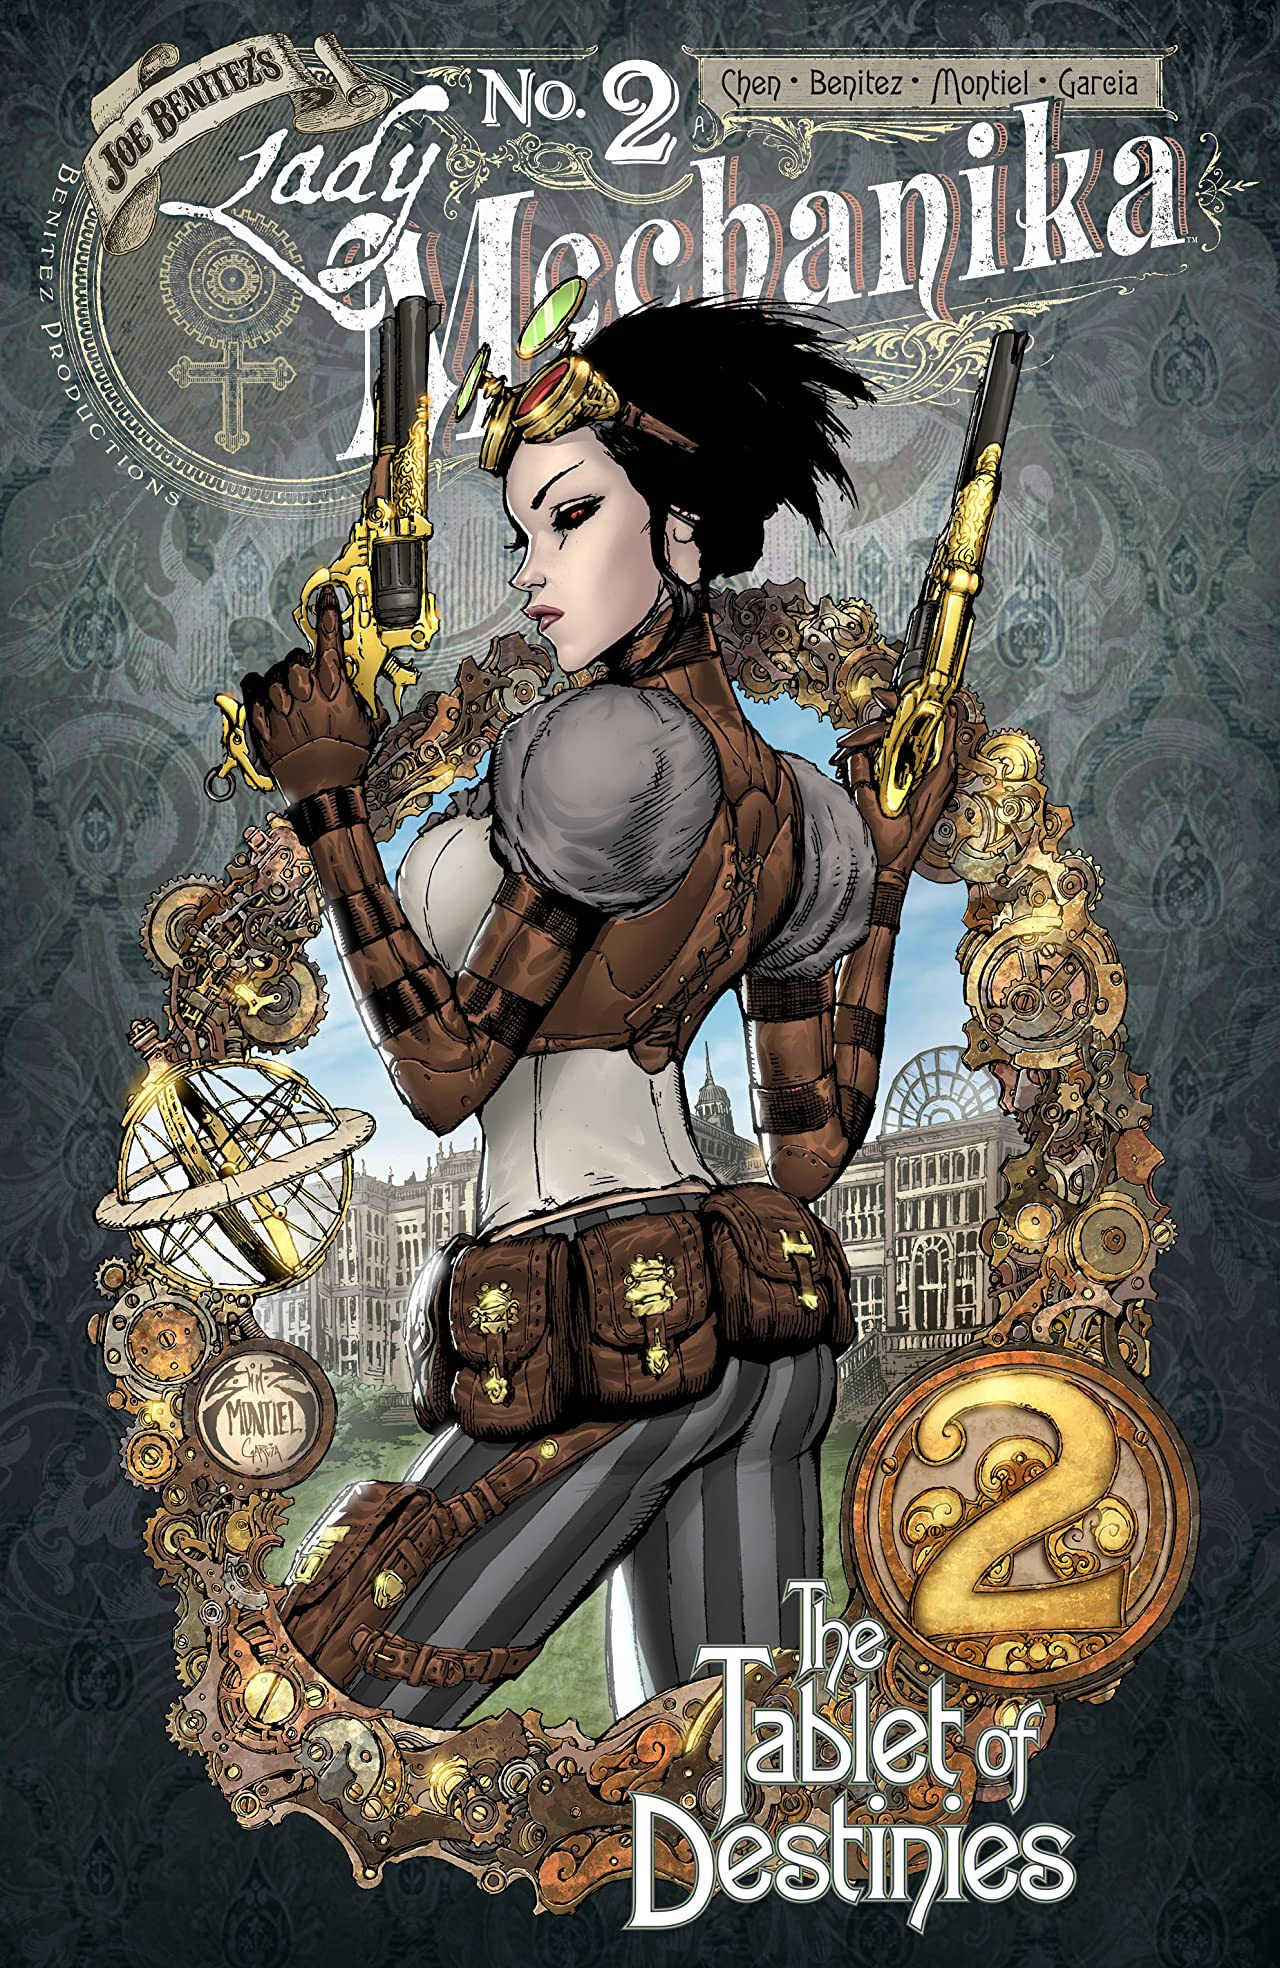 Lady Mechanika: The Tablet of Destinies #2